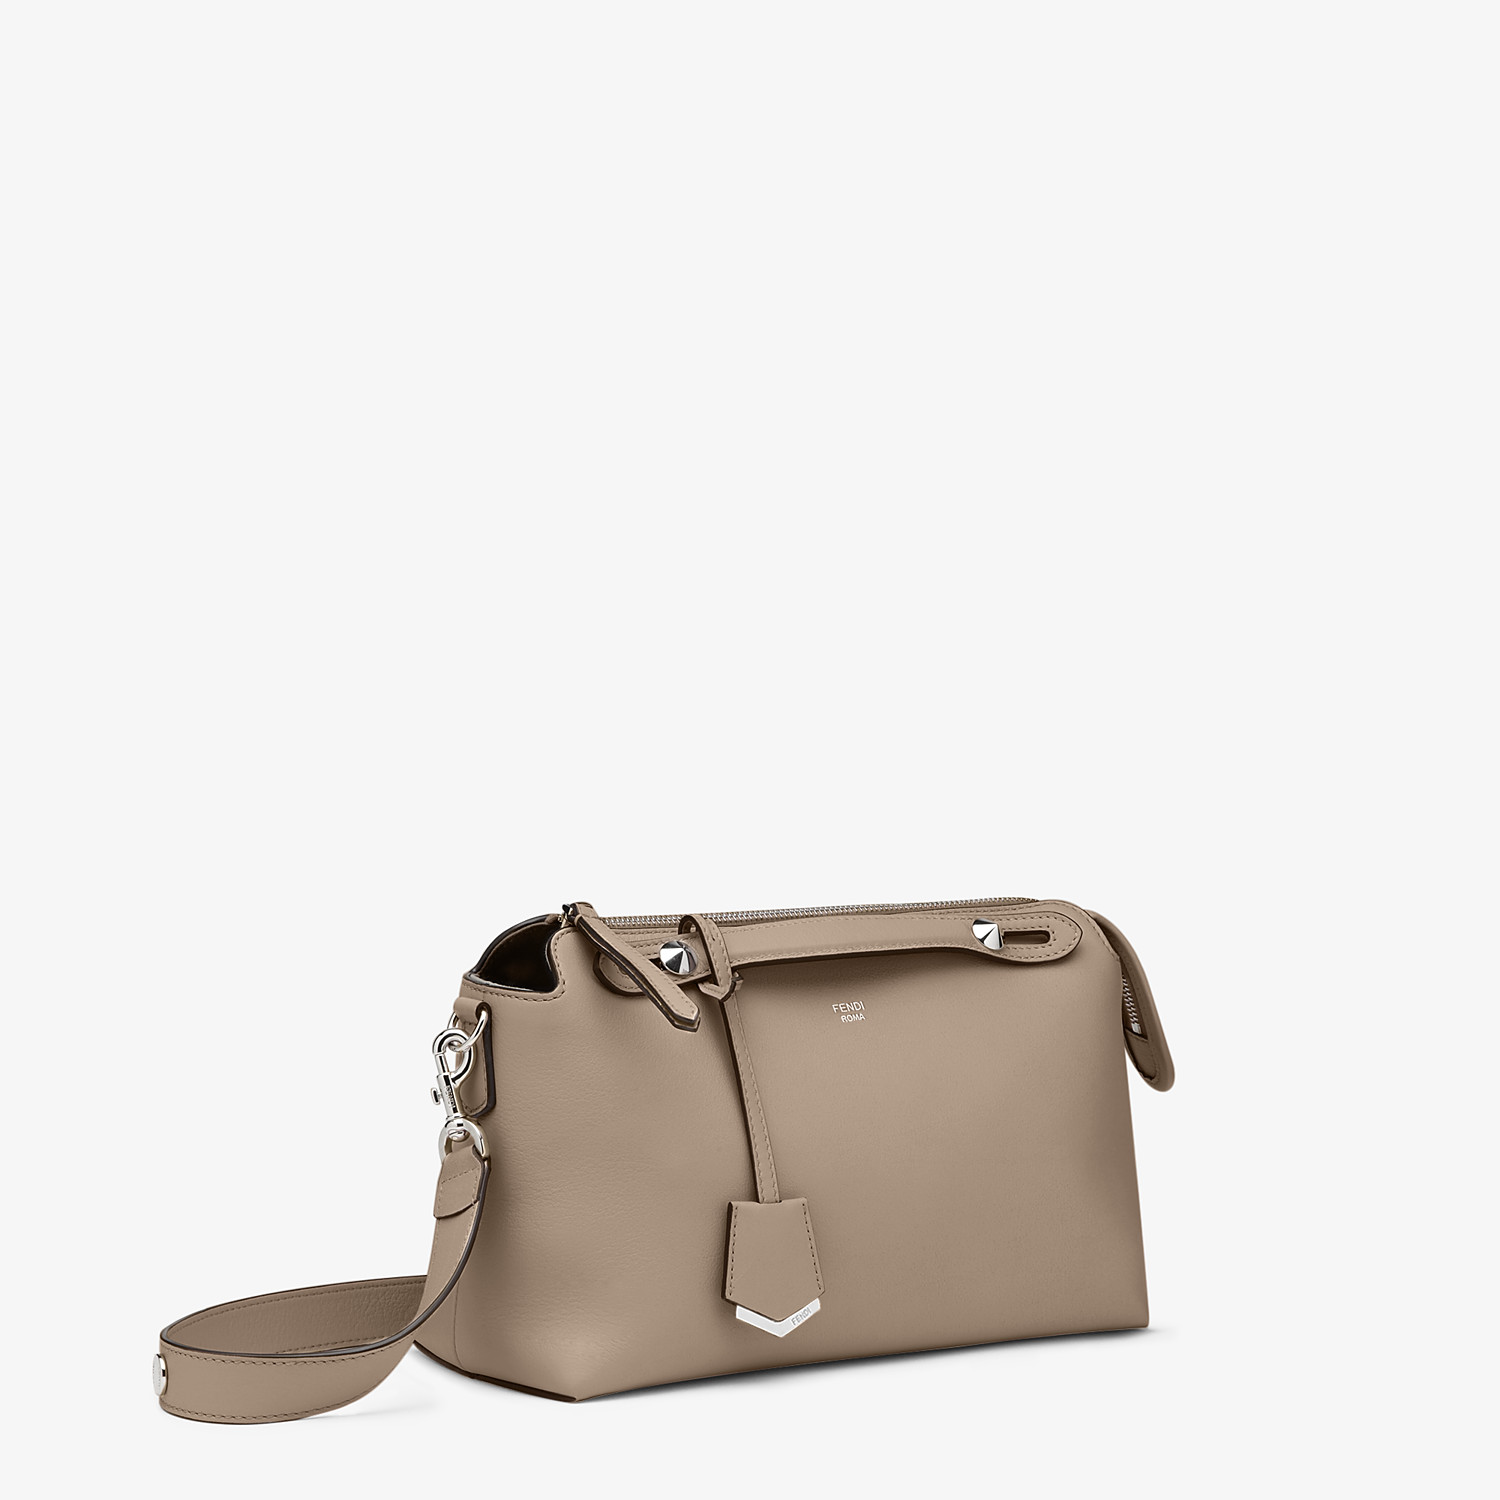 FENDI BY THE WAY MEDIUM - Beige leather Boston bag - view 2 detail